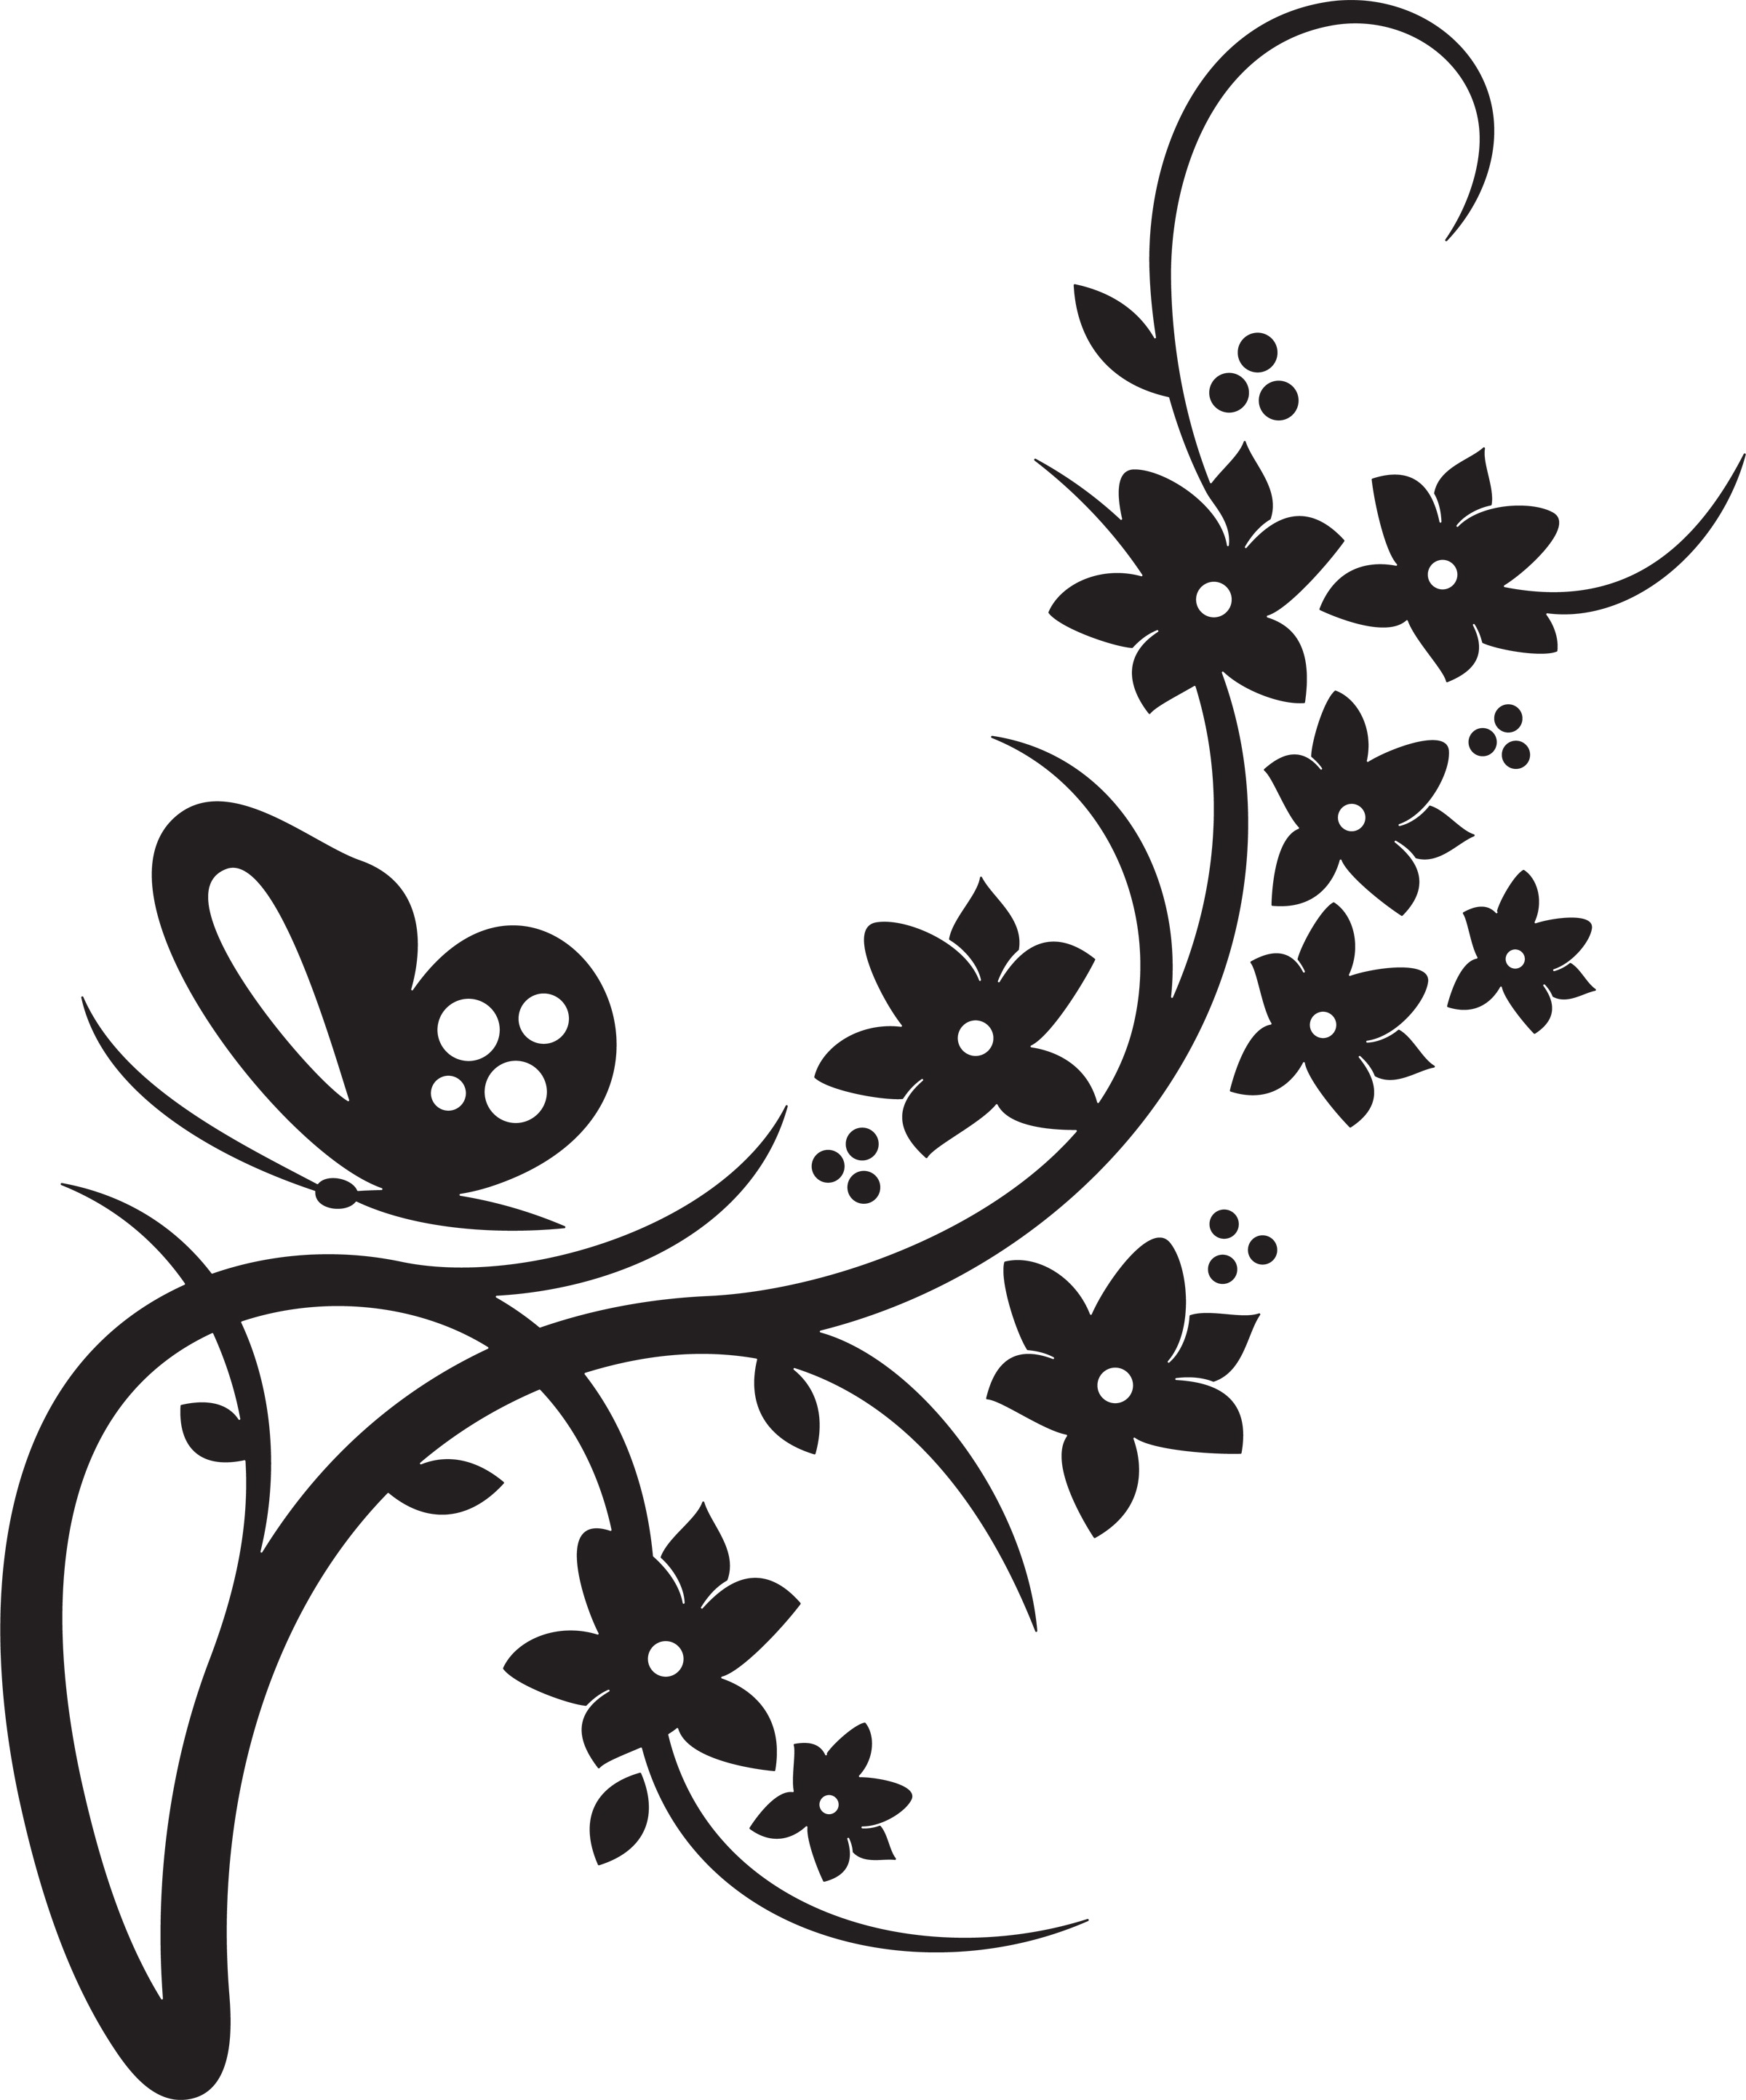 Free Floral Design Clipart, Download Free Clip Art, Free